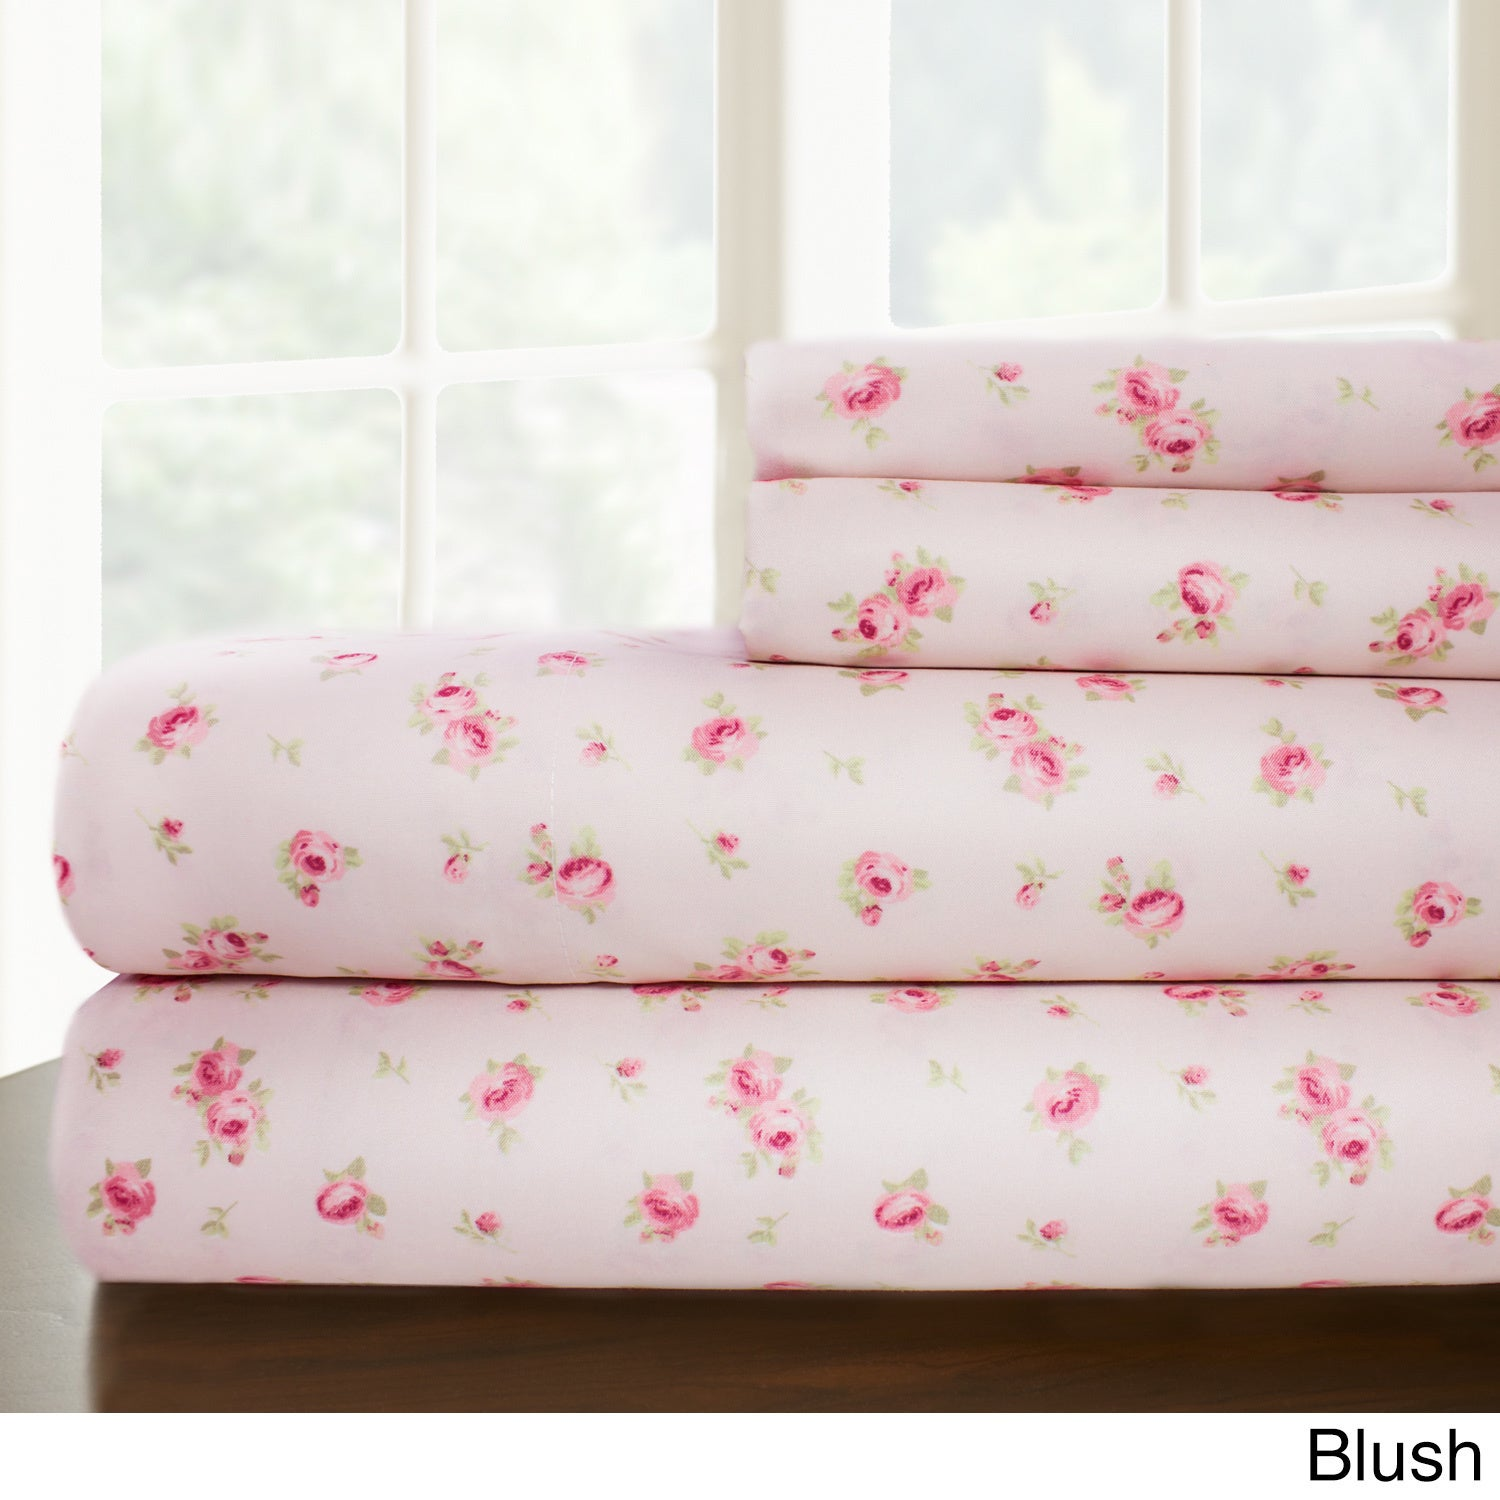 amrapur overseas inc printed sheet set blush queen  ebay - picture  of